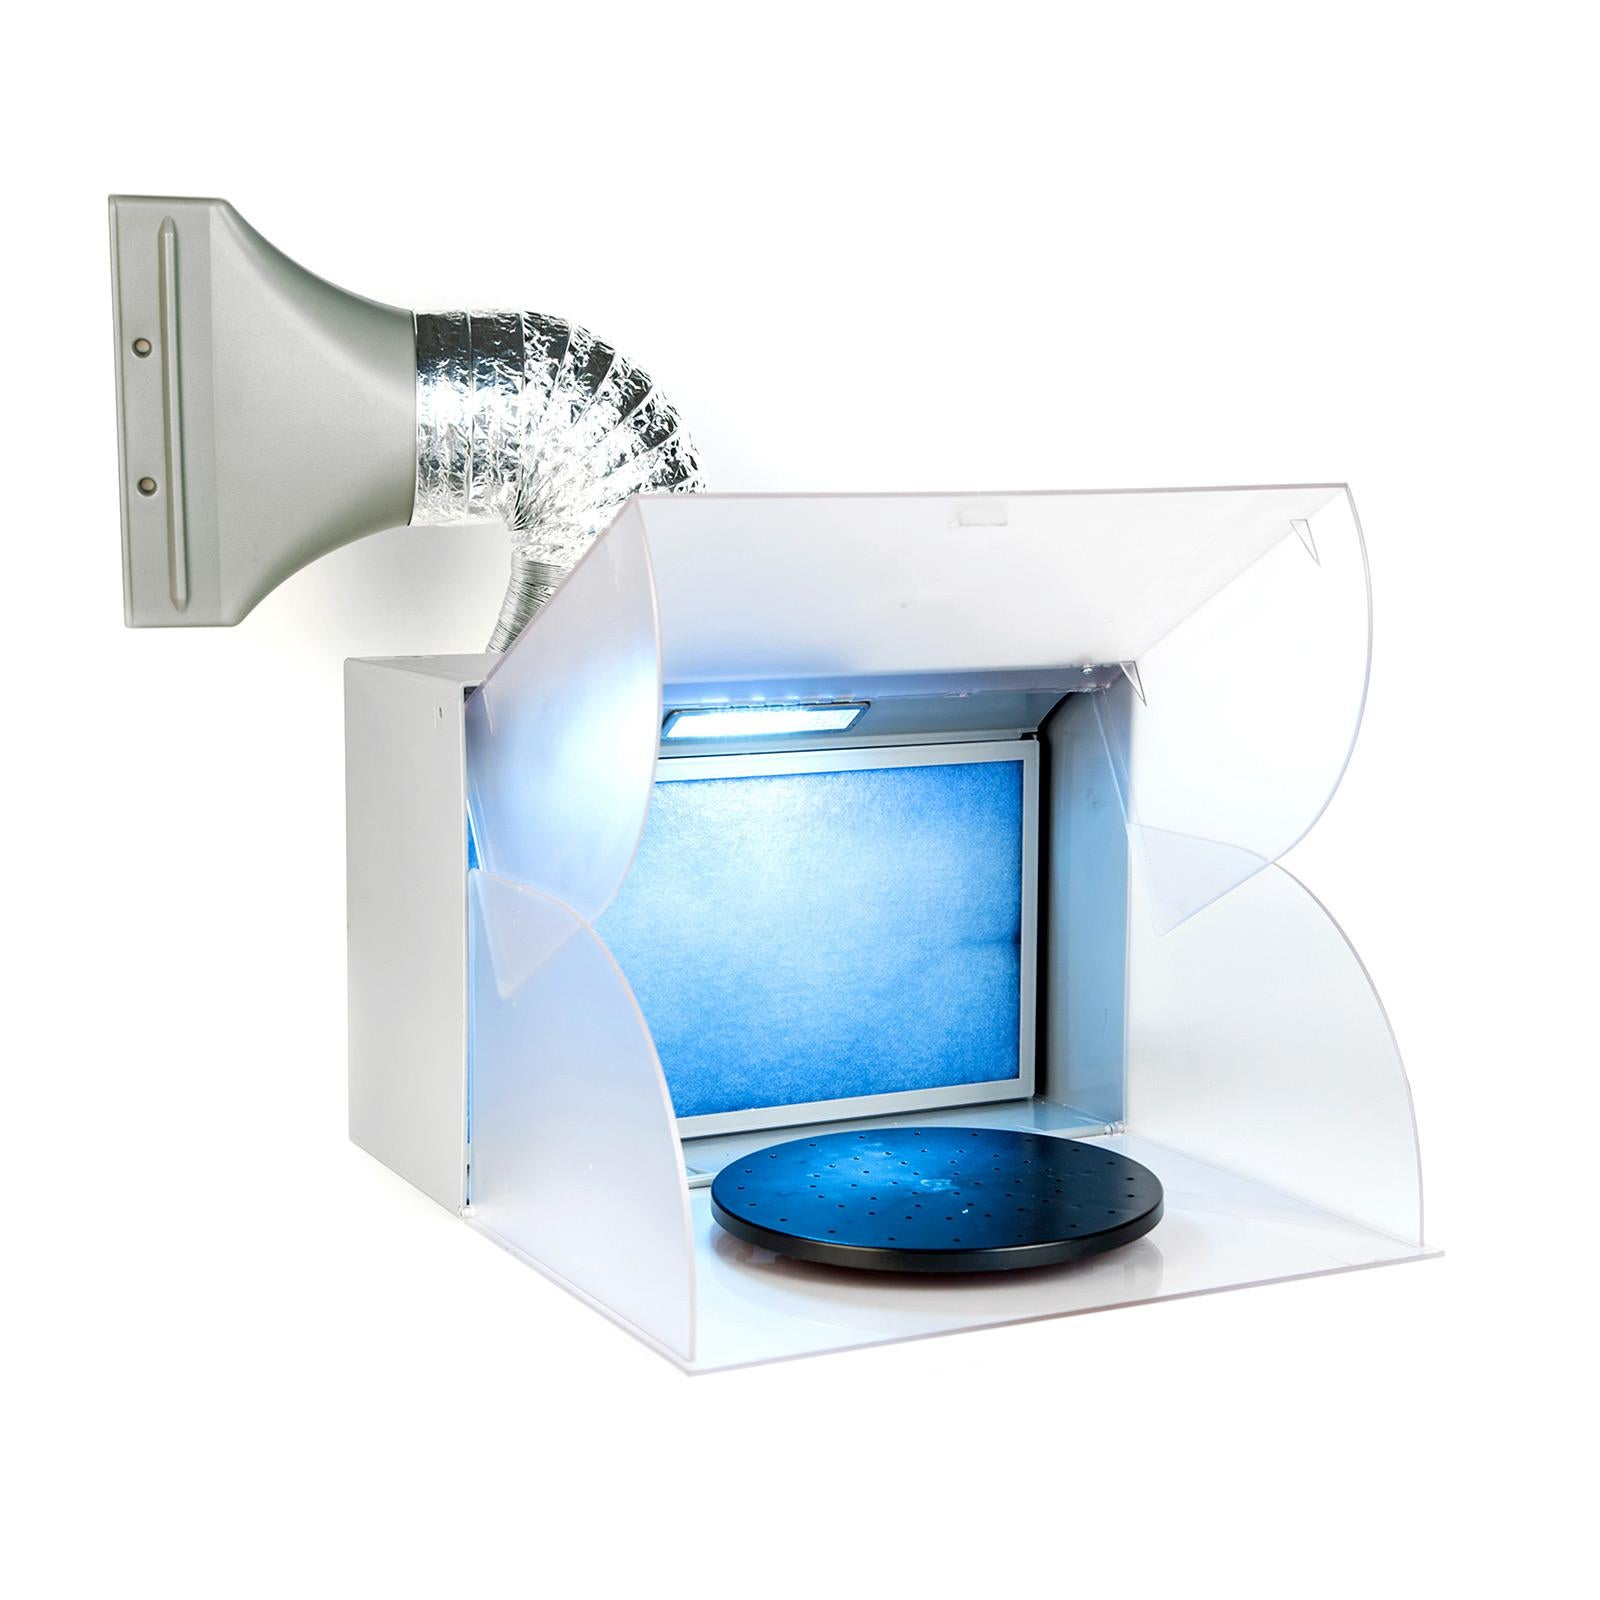 portable exhaust fan air brush spray booth with led airbrush paints